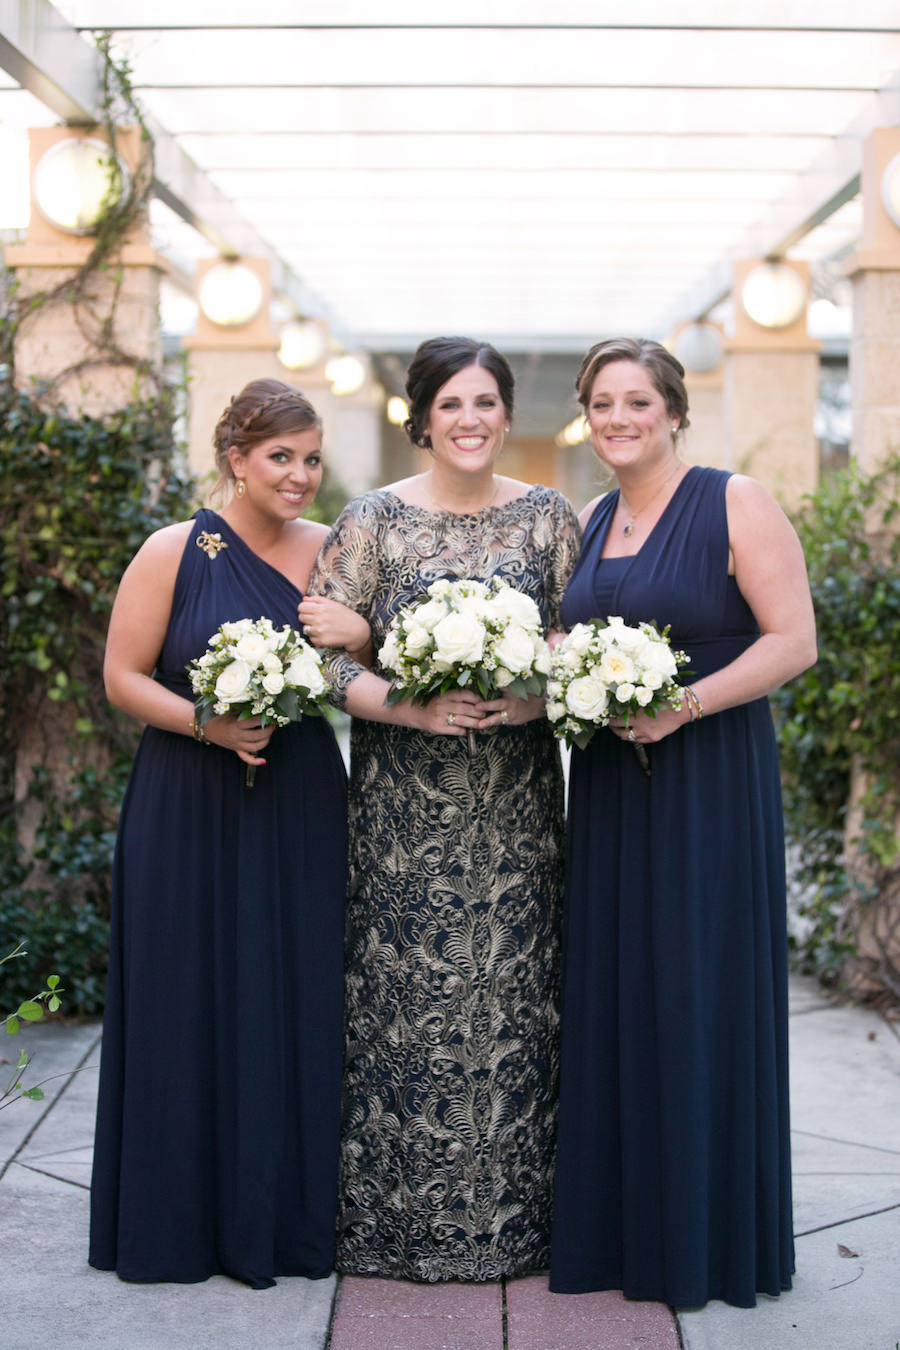 Outdoor Garden Bridal Portrait wearing Embroidered Navy Vintage Inspired Lace Wedding Dress by Tadashi Shoji with White Rose Bouquet by Northside Florist and White House Black Market Navy Blue Mismatched Bridesmaids Dresses   Tampa Bay Photographer Carrie Wildes Photography